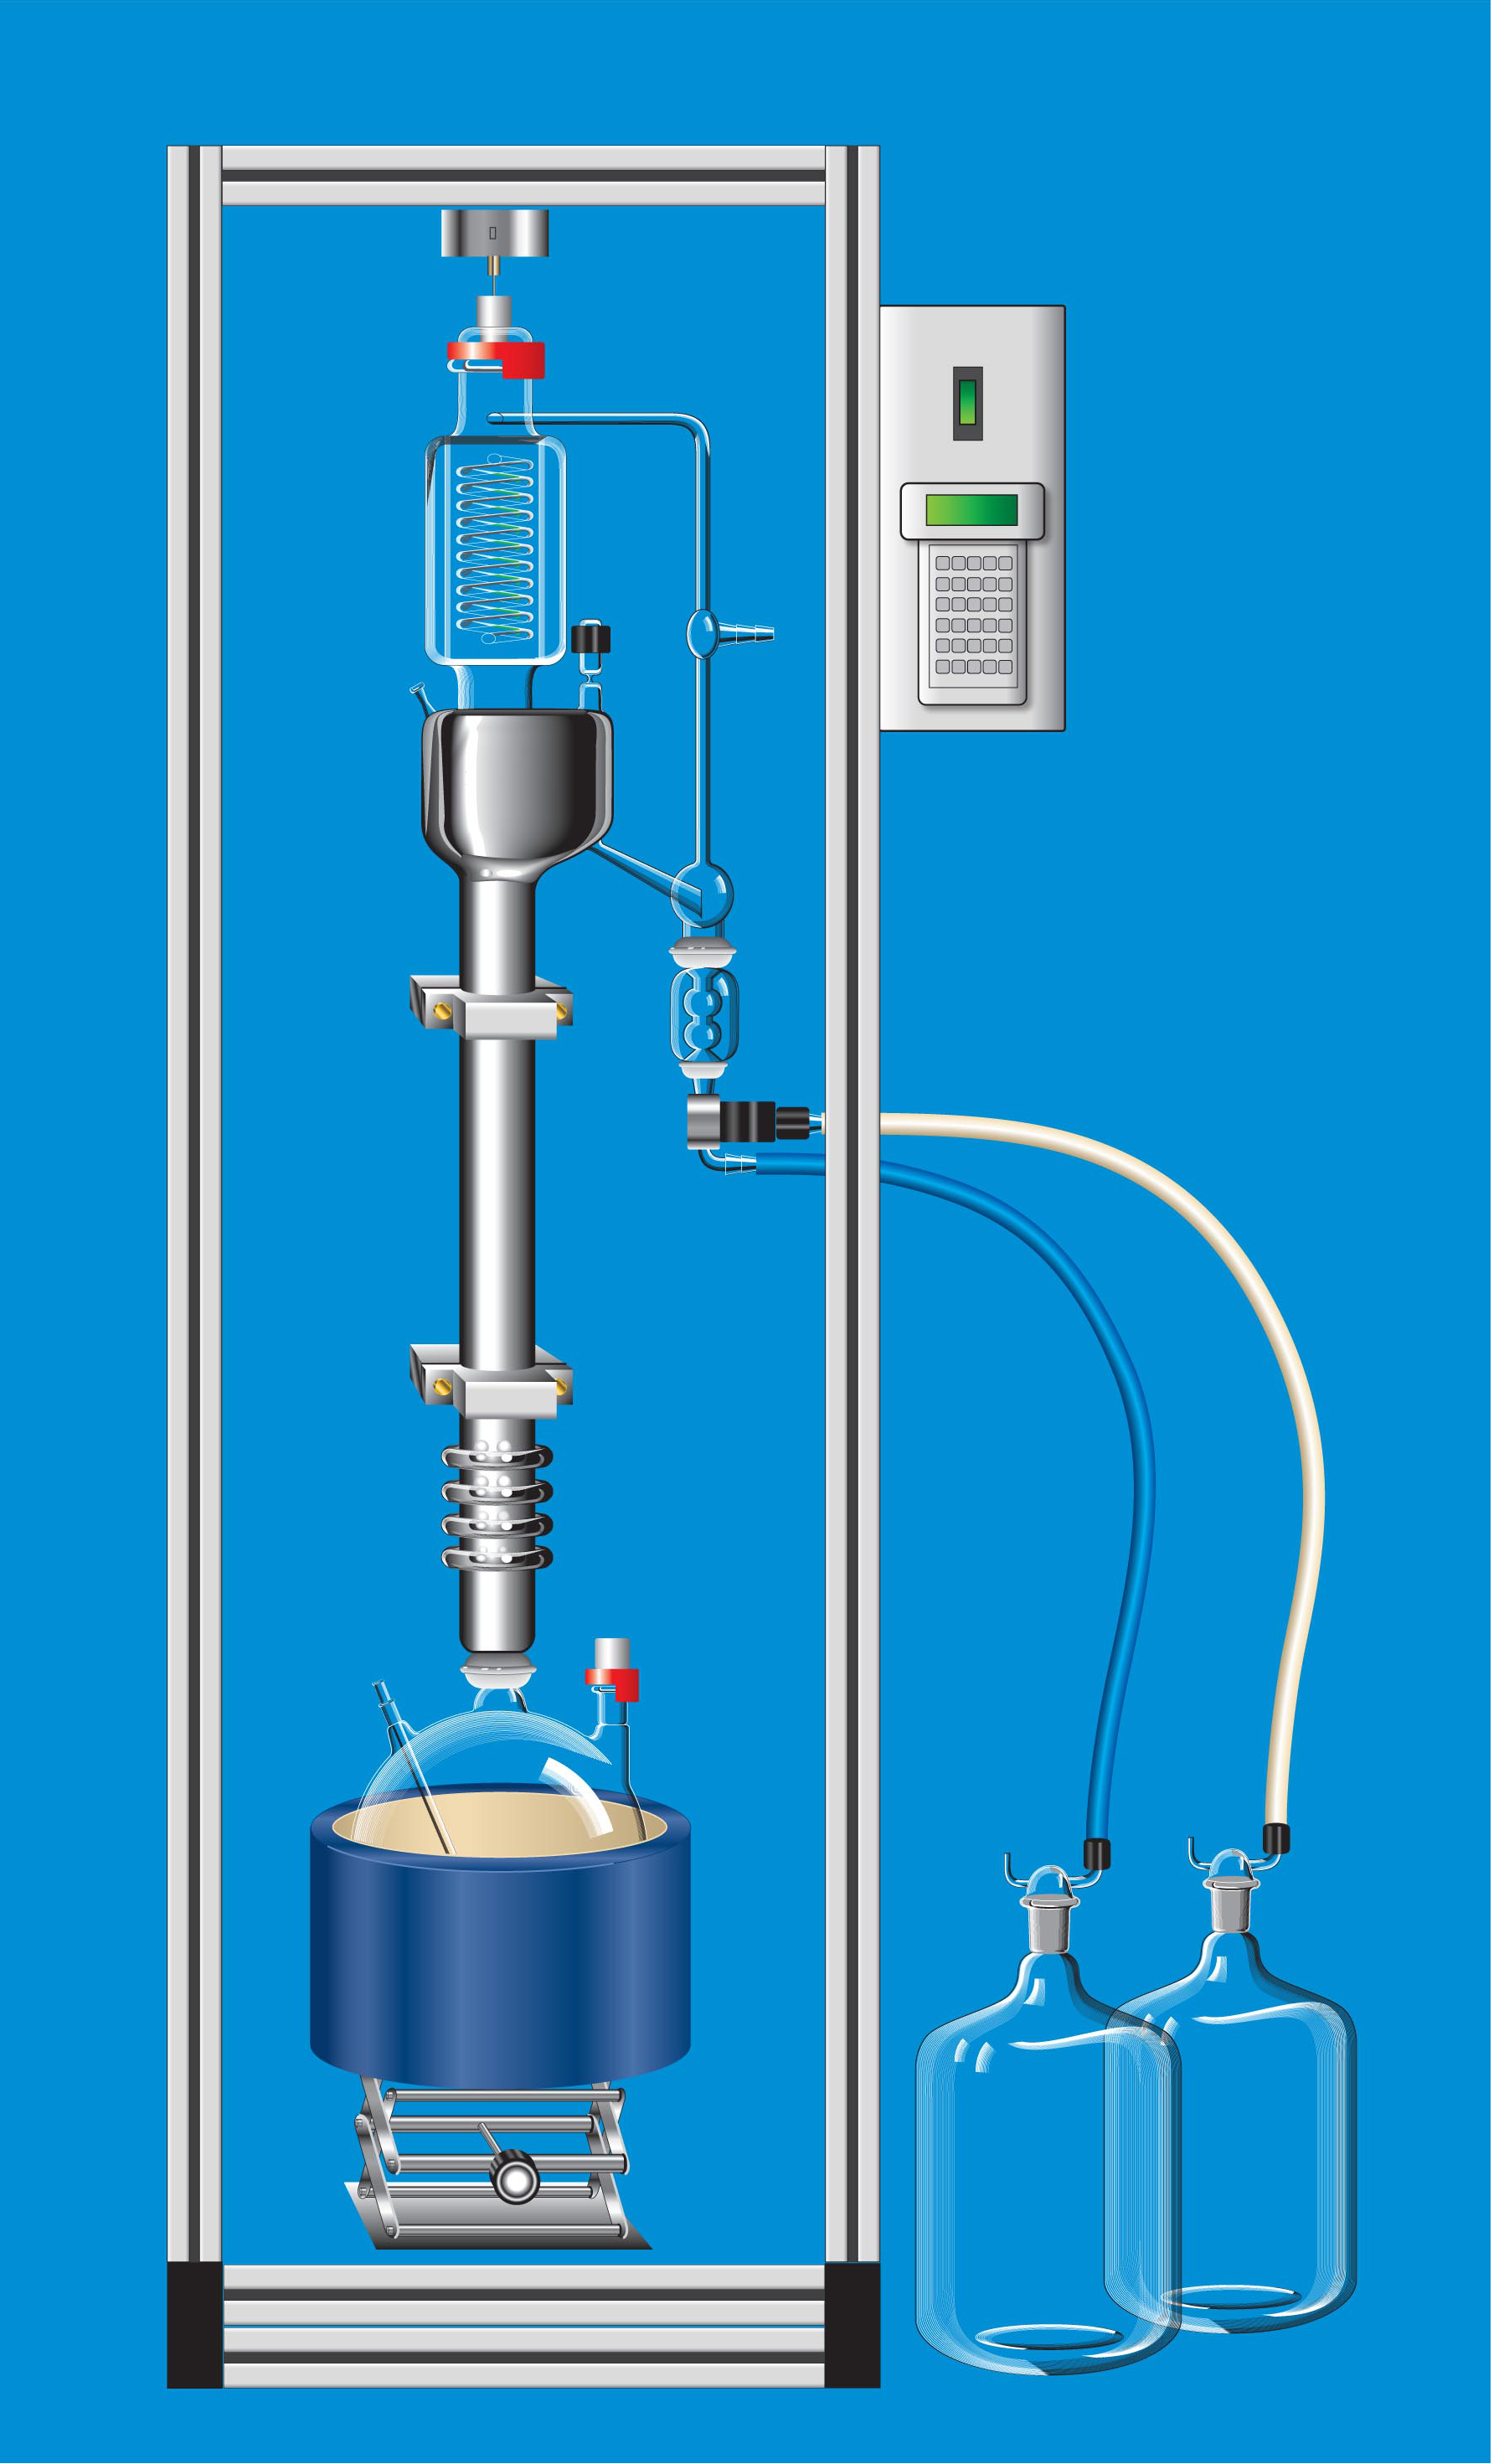 fractional distillation lab Short path distillation - we've designed the world's best fractional distillation products, including complete kits and systems all of our patent-pending equipment is made in the usa from the finest quality materials on the market.